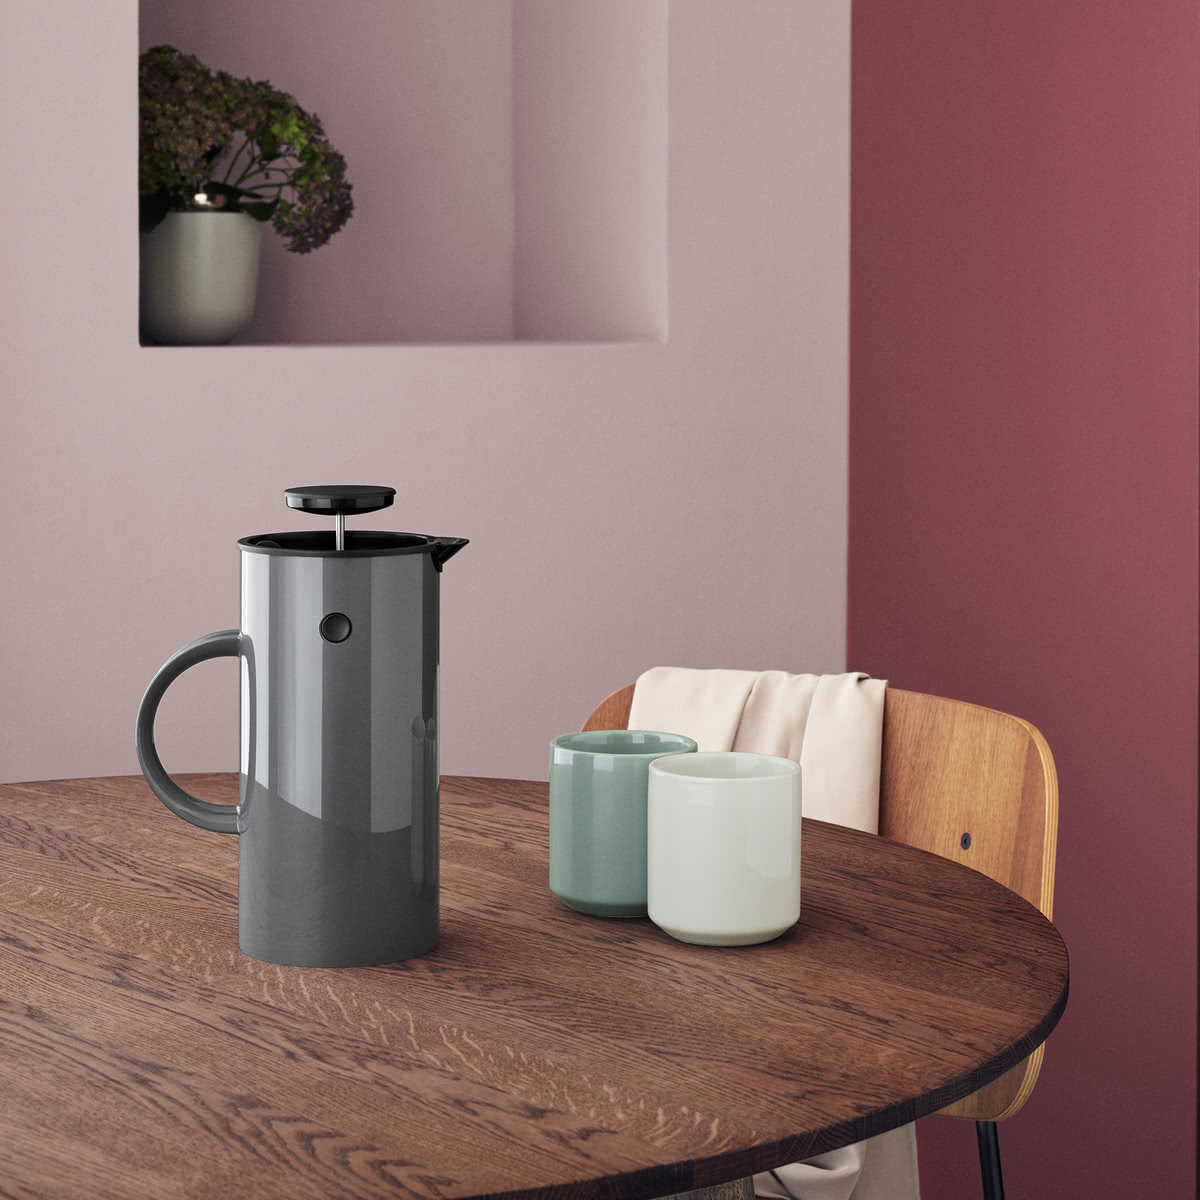 Stelton - Classic EM Press Tea Maker 1L Anthracite and Core Thermos Mug white and green